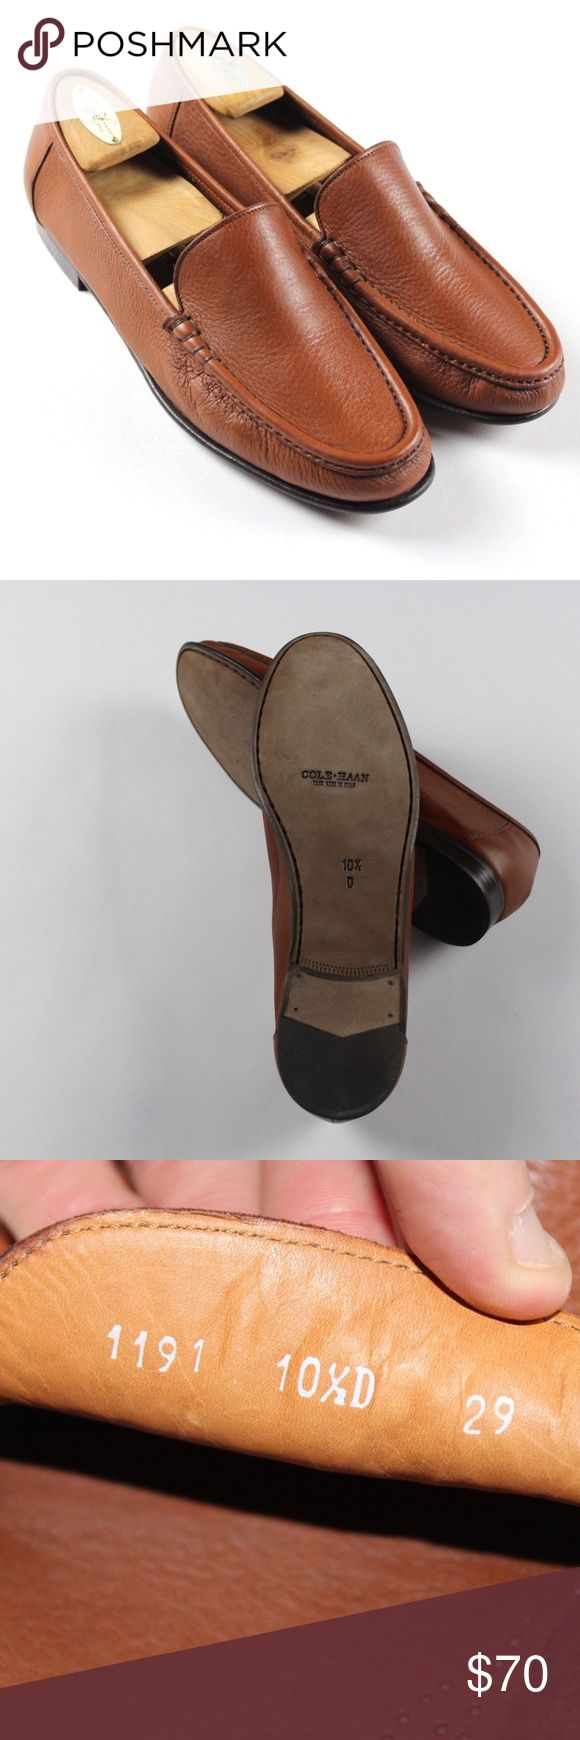 Cole Haan Resort Italian Leather Driving Loafers Cole Haan Resort Italian Leather Driving Loafers  Excellent shoes  Worn once, shoe trees not included  Brown  The size is 10.5  Leather  Check out my other items in my store! Cole Haan Shoes Loafers & Slip-Ons